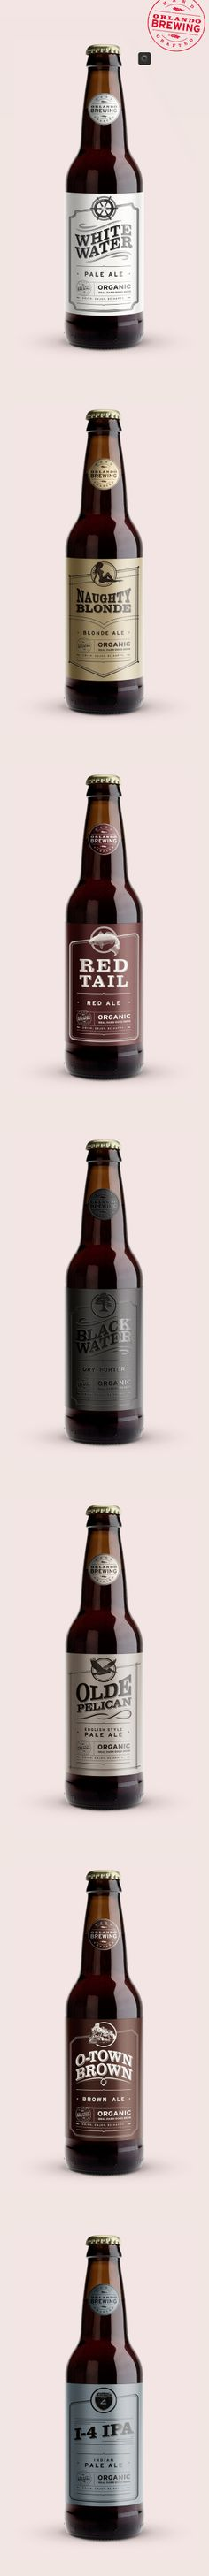 White Water Pale Ale design for Orlando Brewing Co. by Ross Burwell